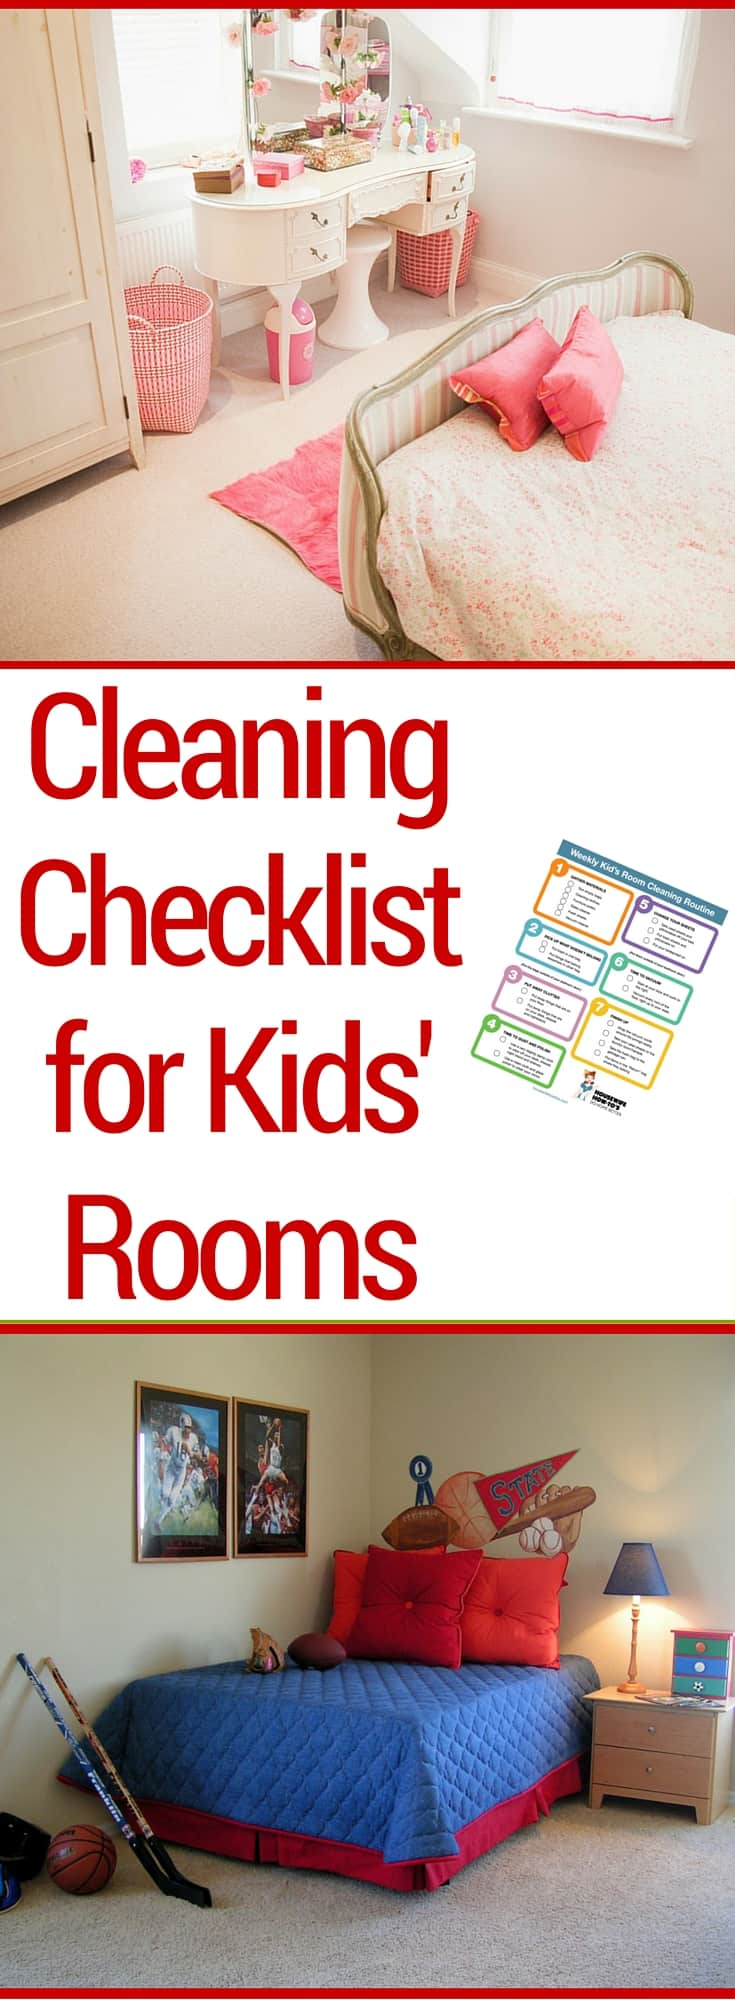 Kid Rooms Cleaning Checklist For Kids' Rooms Free Printable